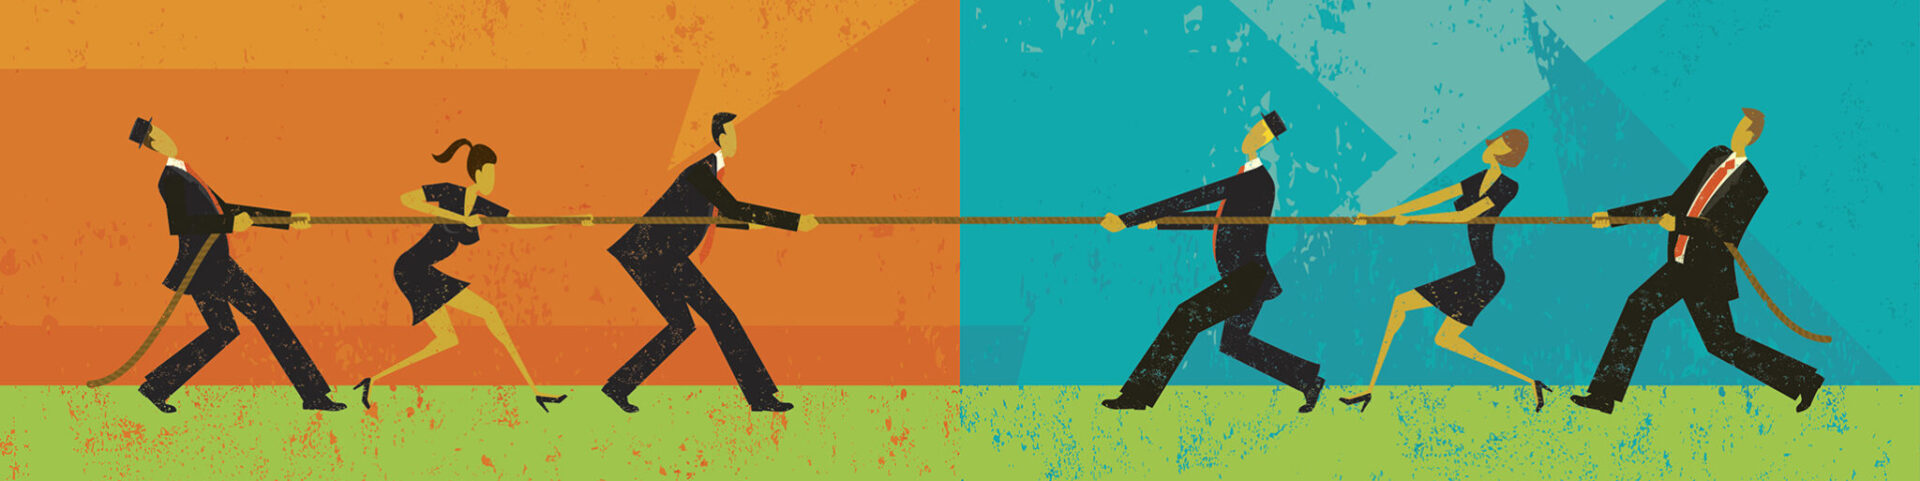 Businesspeople competing in in a tug-of-war battle on the great debates about leadership